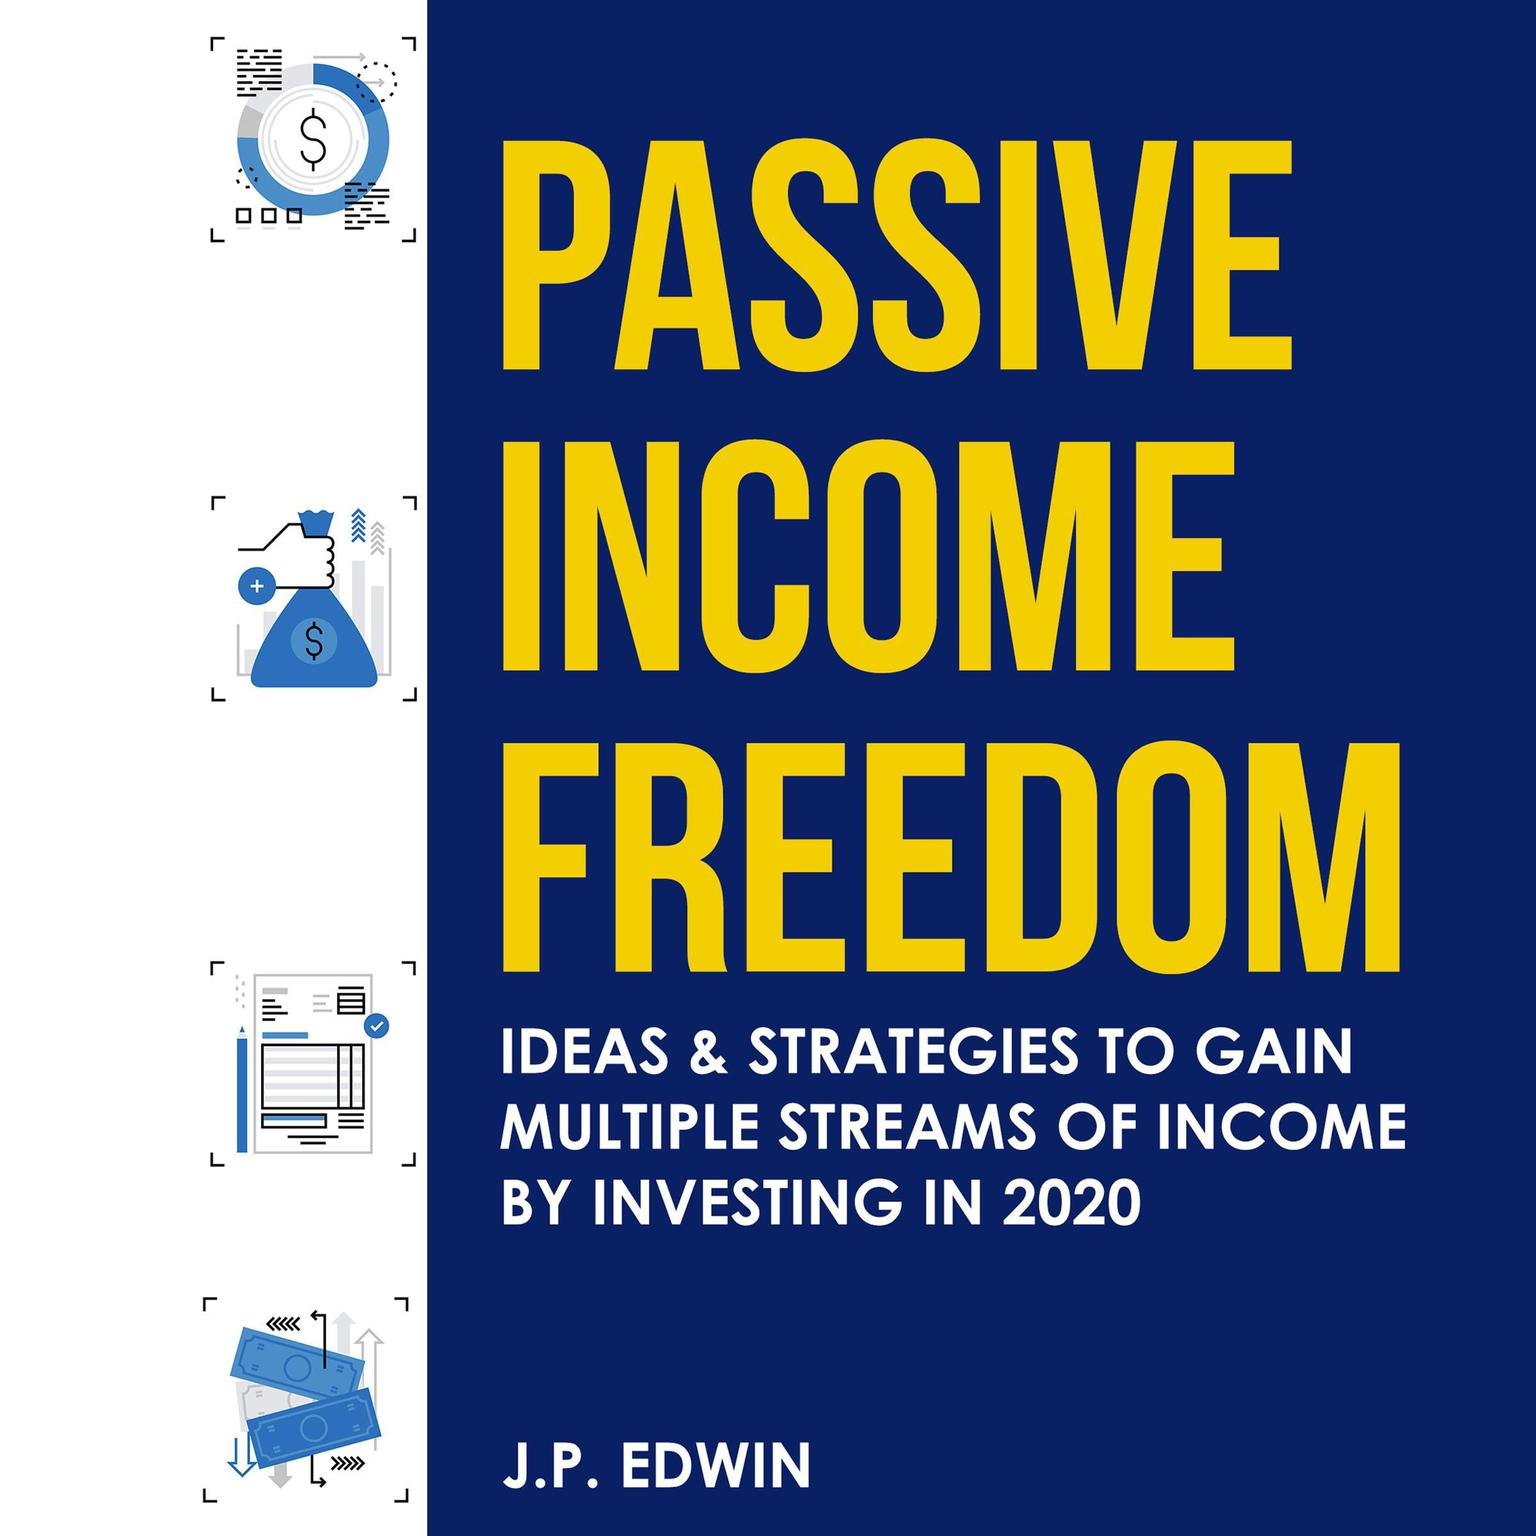 Passive Income Freedom: Ideas & Strategies to Gain Multiple Streams of Income by Investing in 2020 Audiobook, by J.P. Edwin